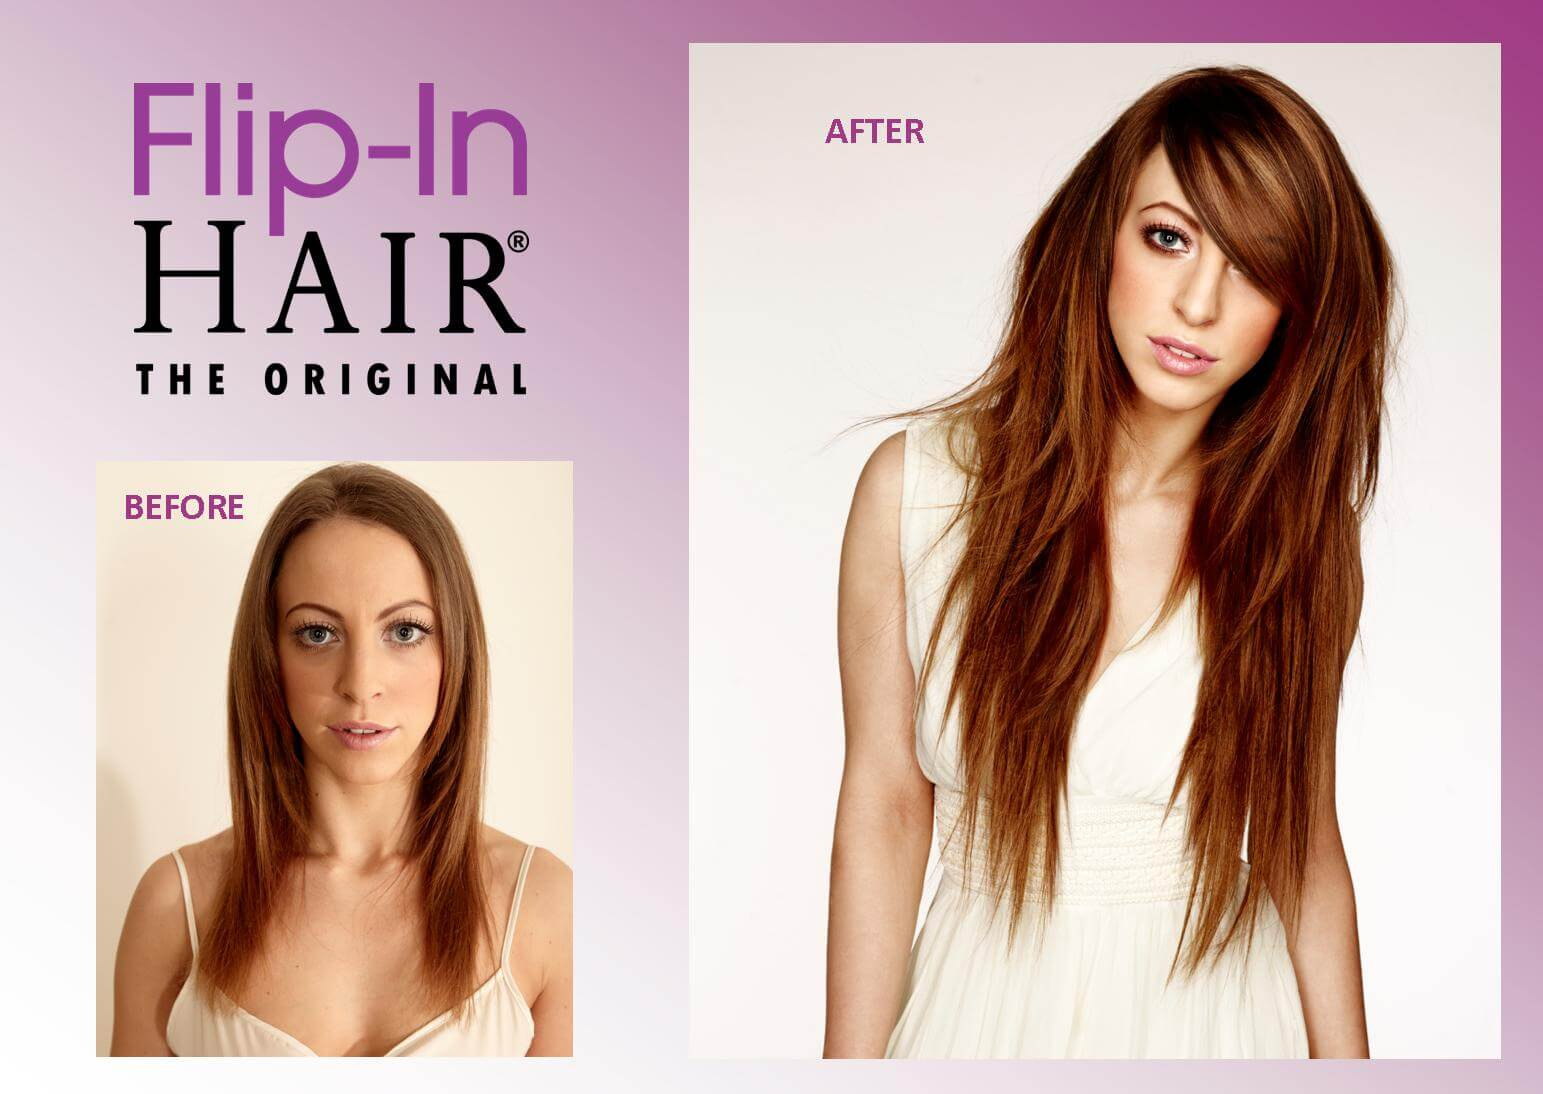 Flip In hair Promo Photo 2